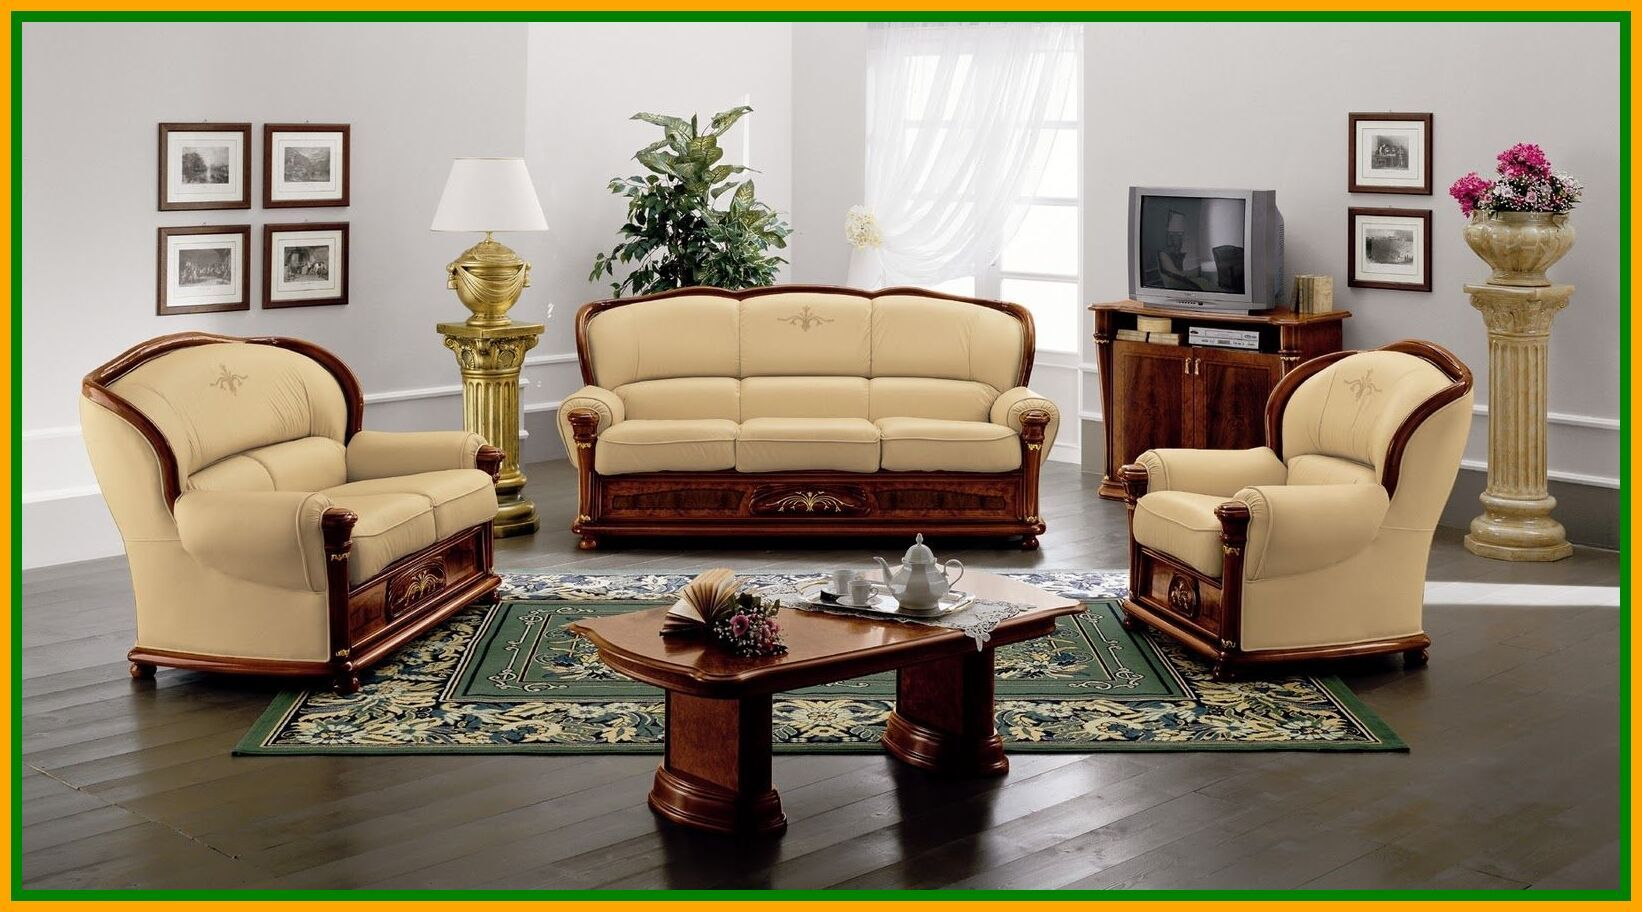 62 Reference Of Sofa Table Design In Pakistan In 2020 Sofa T